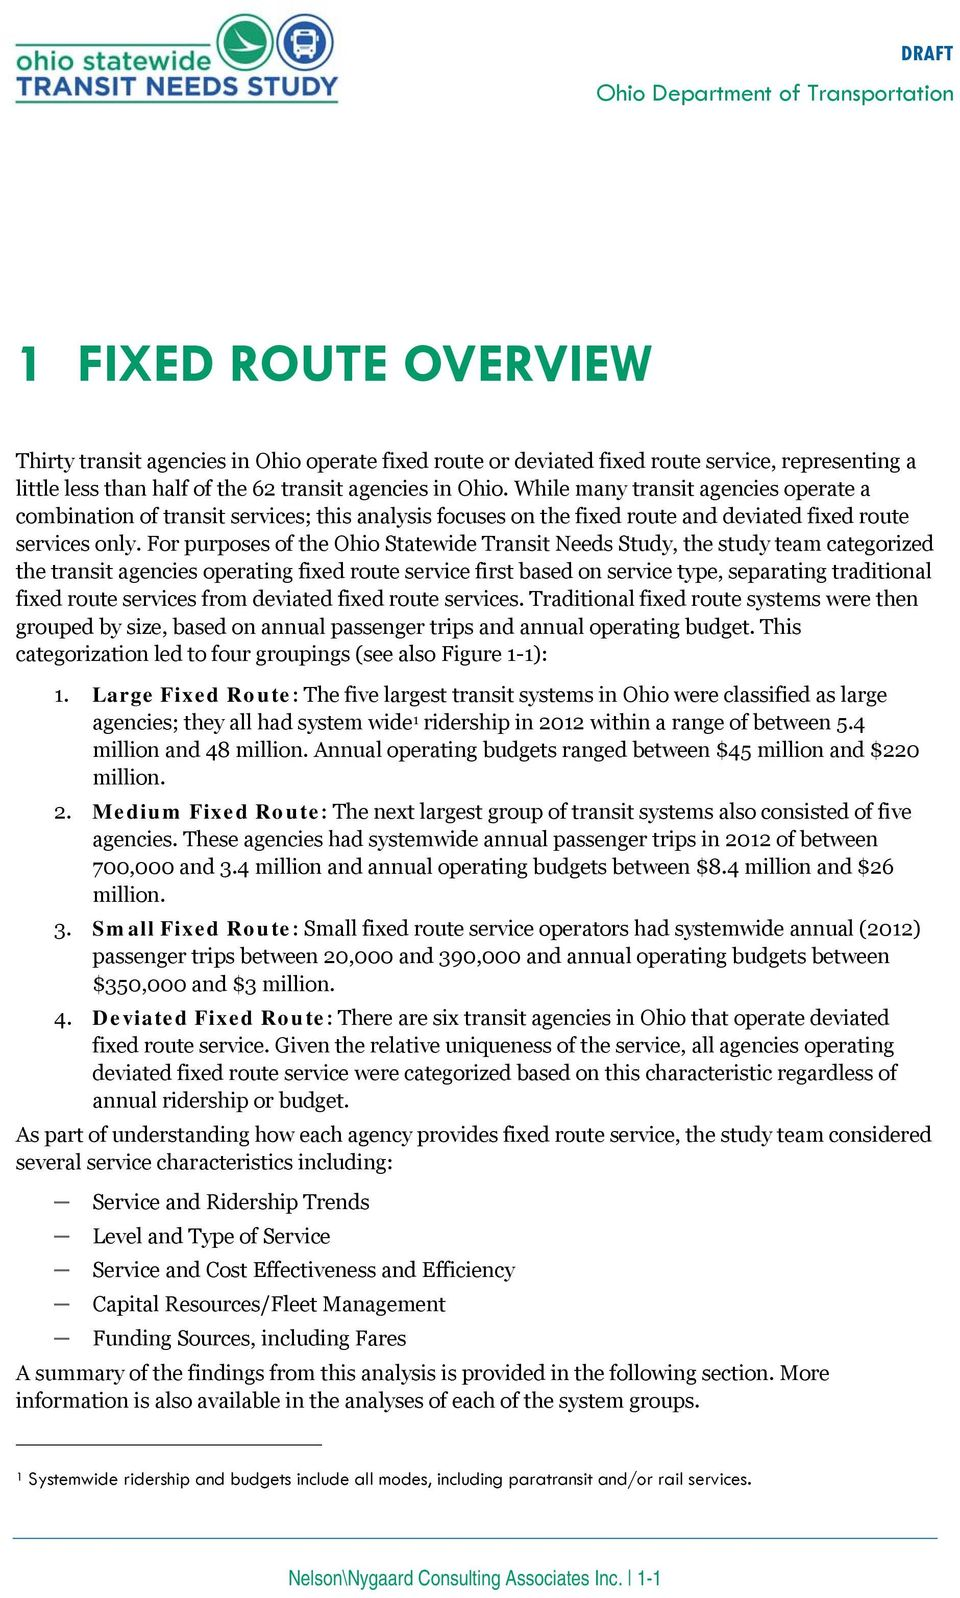 For purposes of the Ohio Statewide Transit Needs Study, the study team categorized the transit agencies operating fixed route service first based on service type, separating traditional fixed route